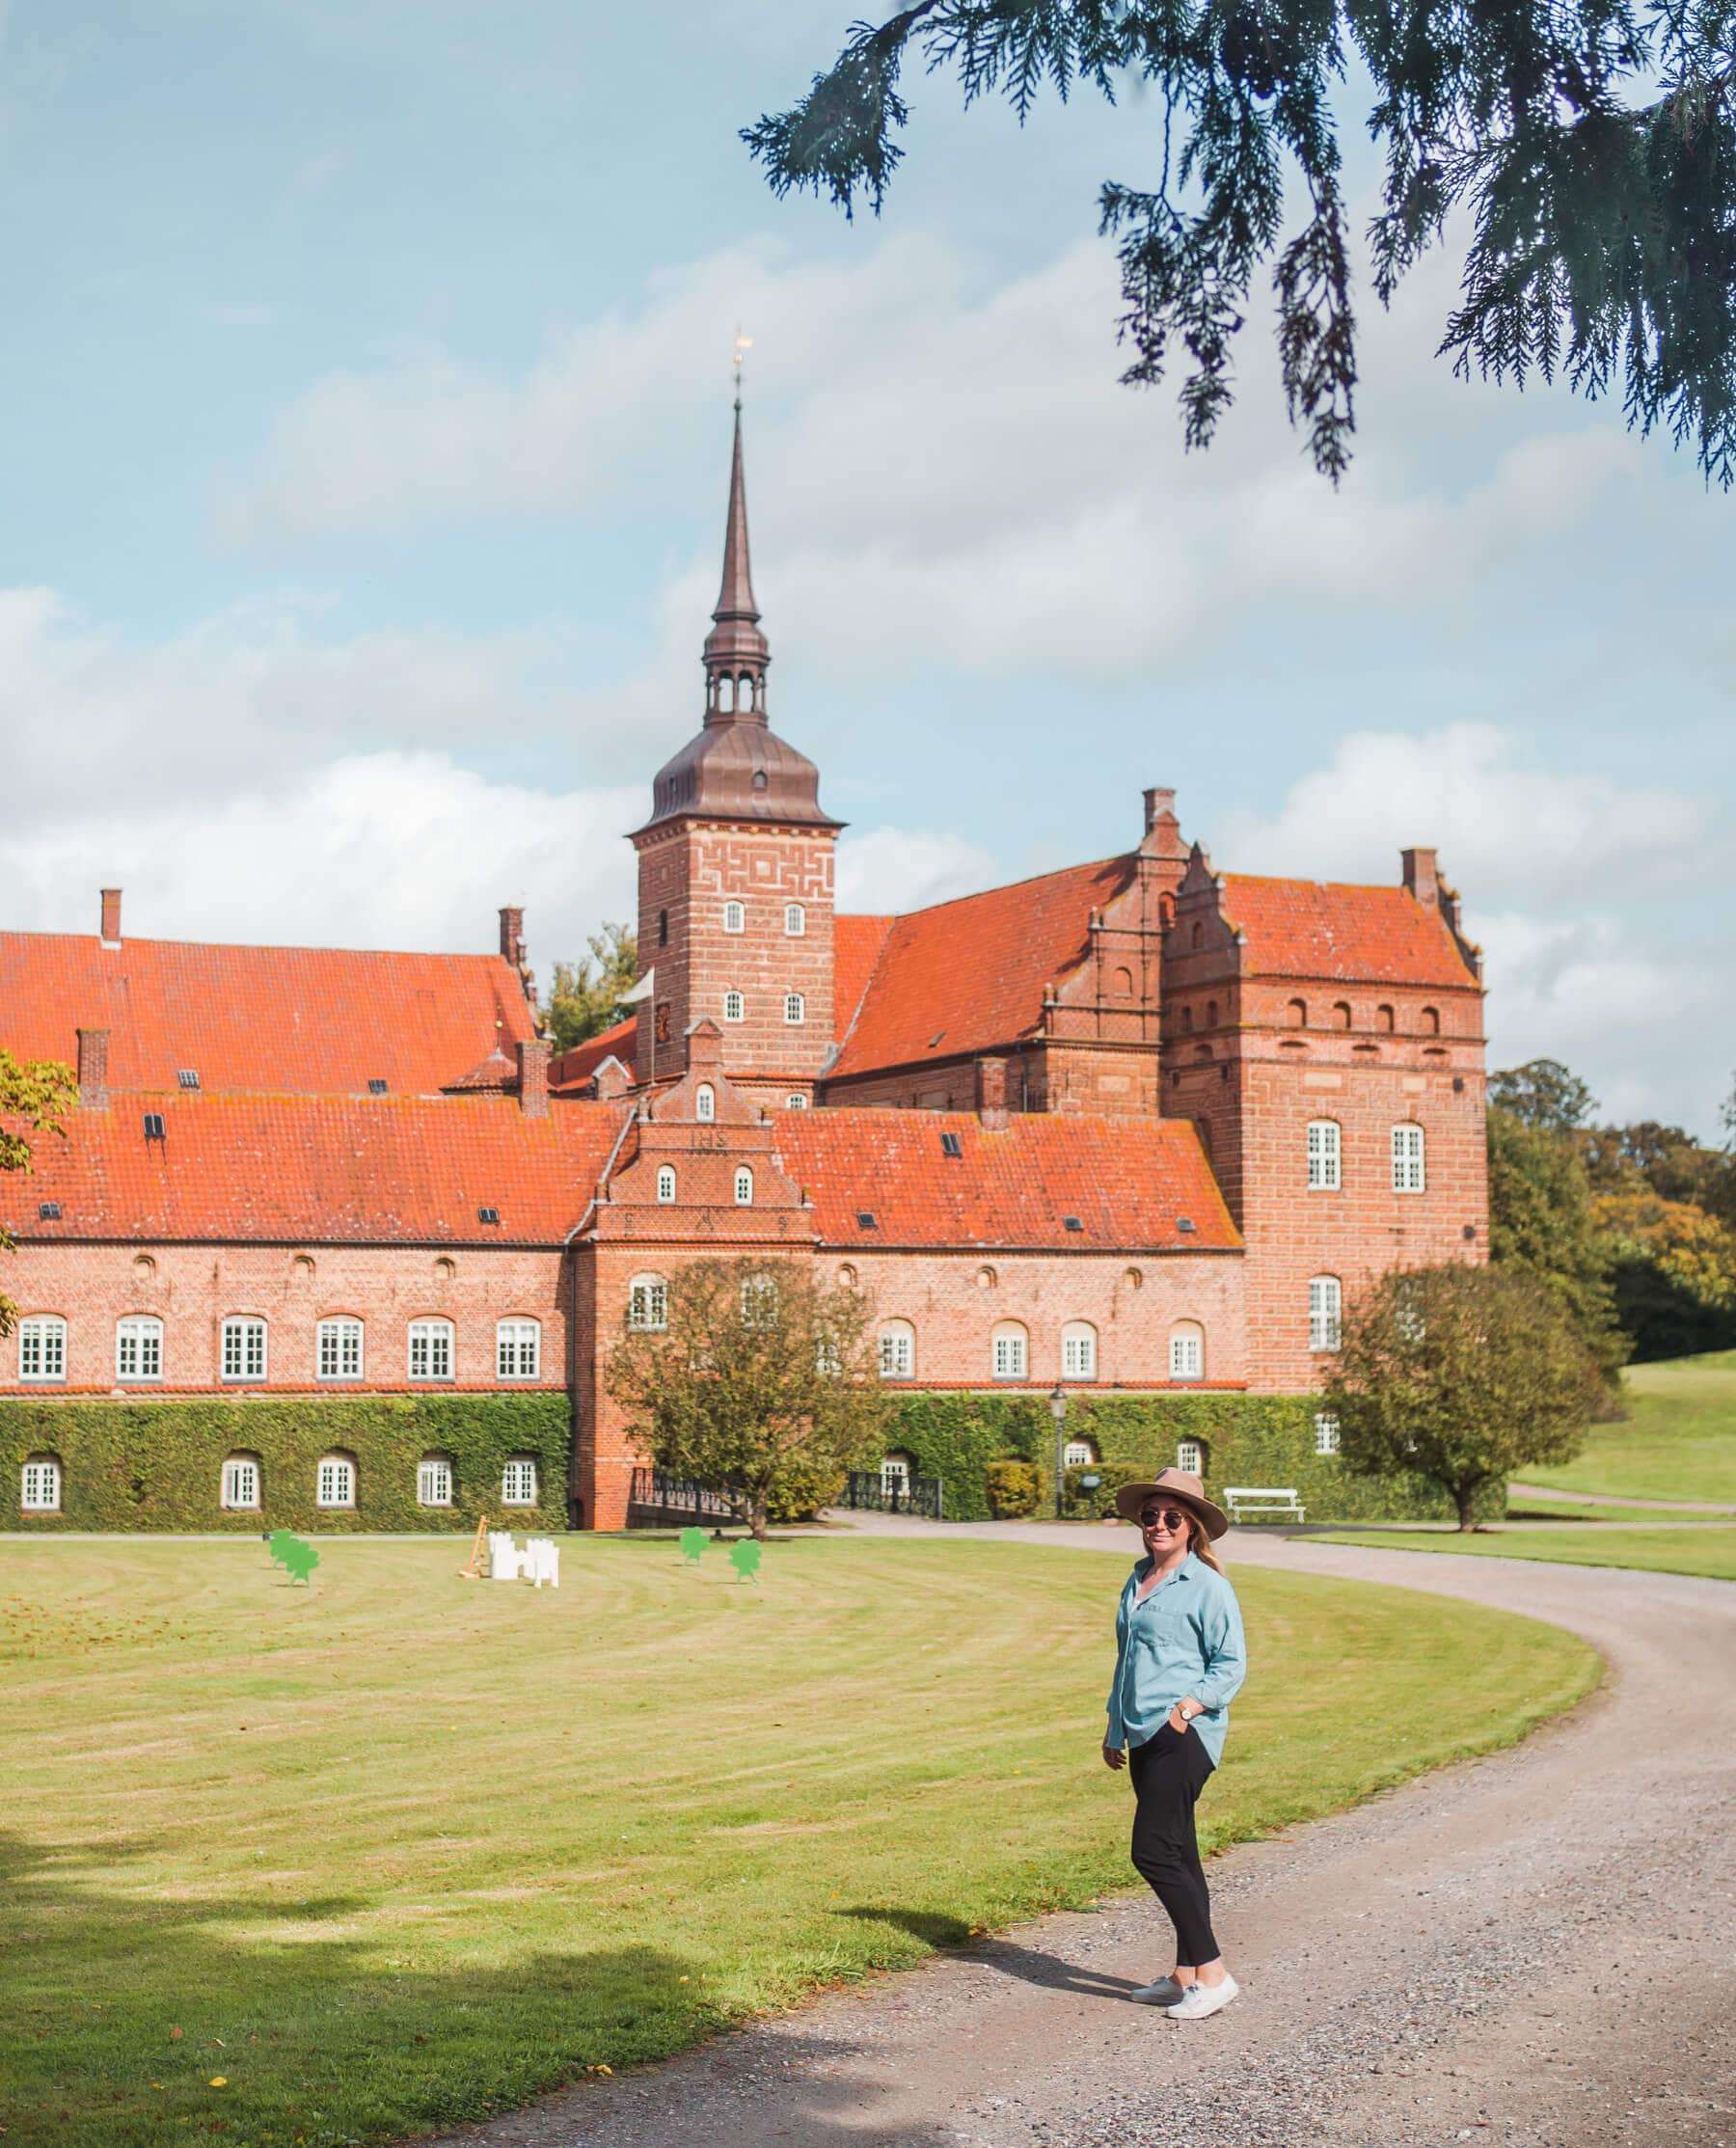 Holckenhavn Castle Hotel located on Funen - The perfect place to stay in Denmark